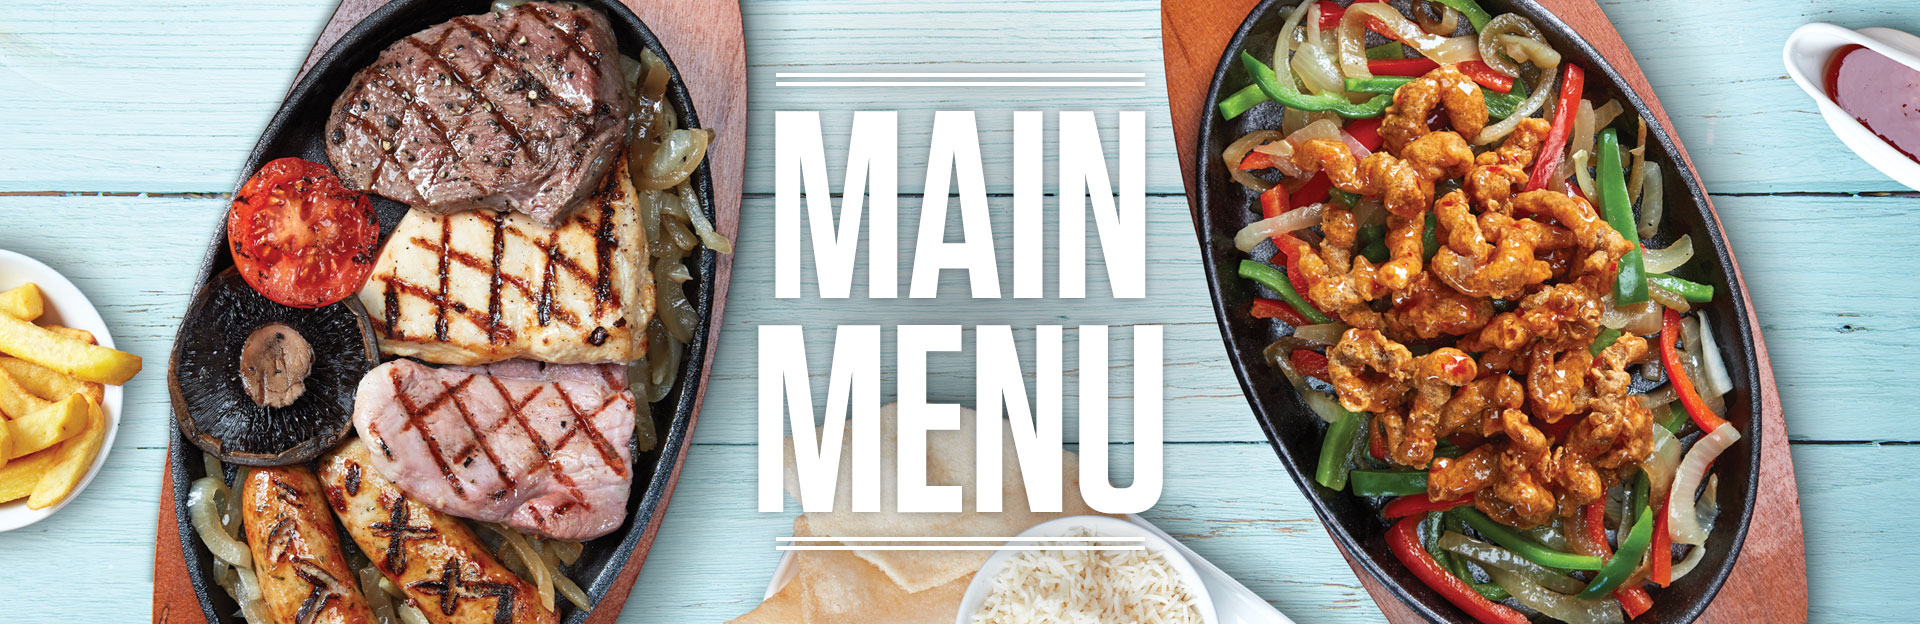 NEW Main Menu & Prices - The Avenue in Kingston Upon Hull